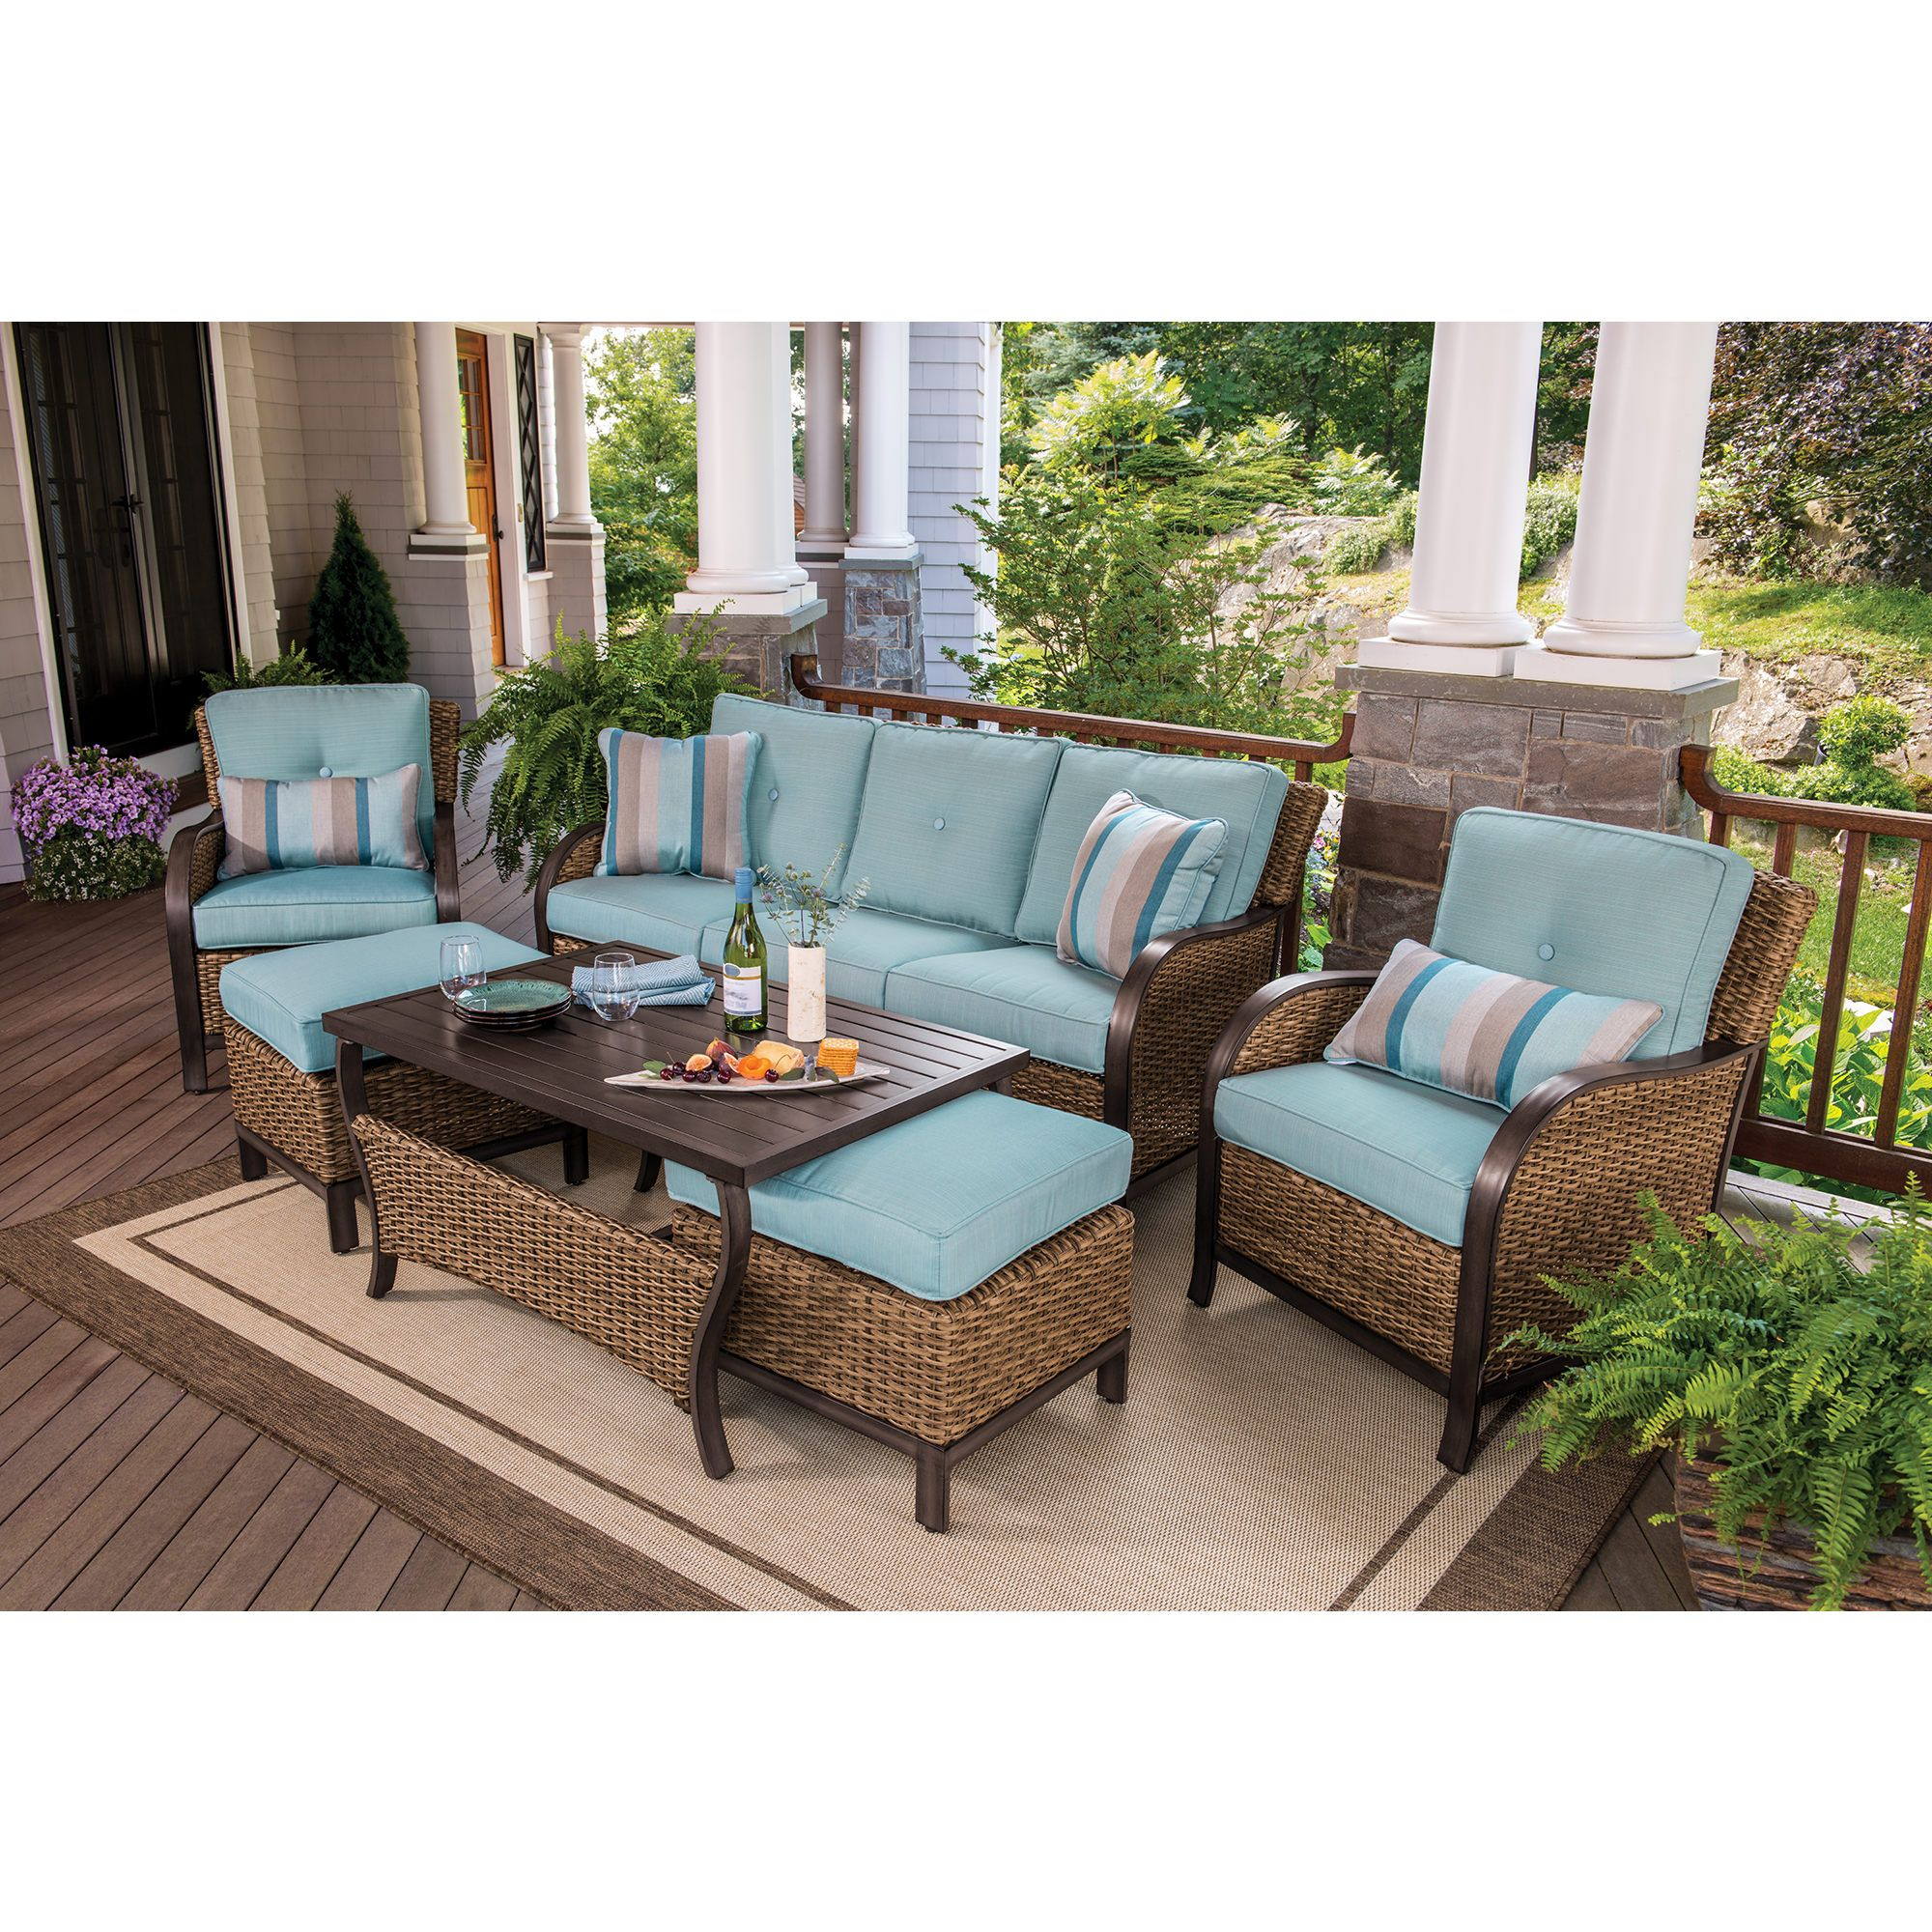 Berkley jensen nantucket 6 piece wicker patio set bjs for Outdoor patio furniture sets